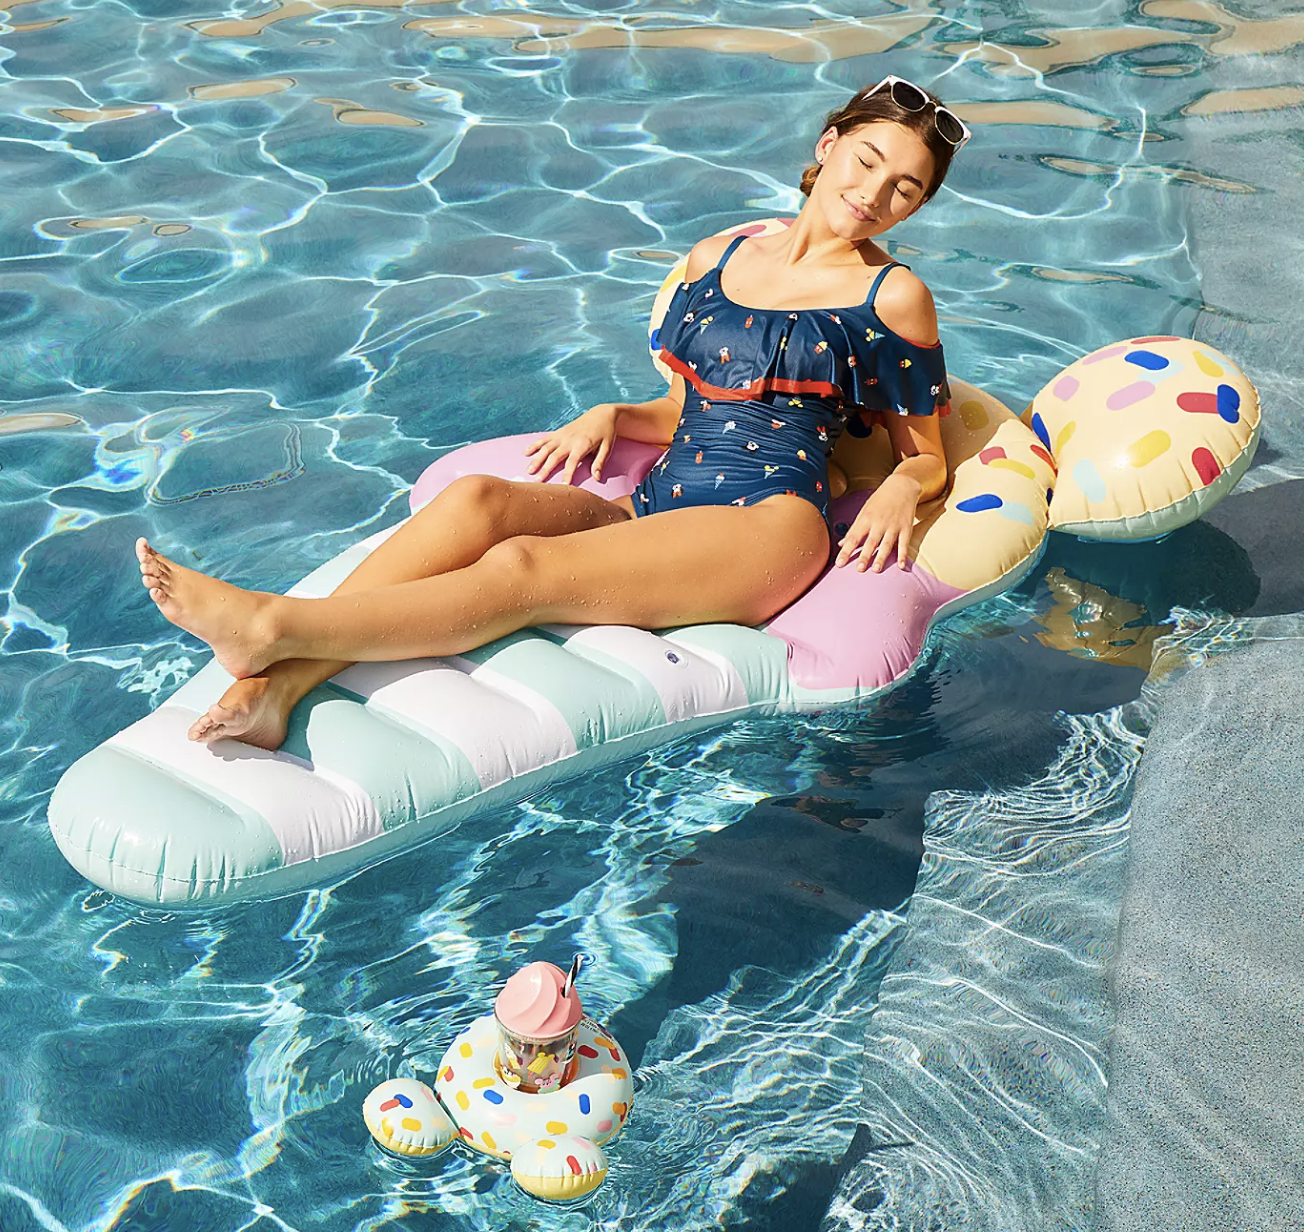 A model on an ice cream Mickey Mouse pool float